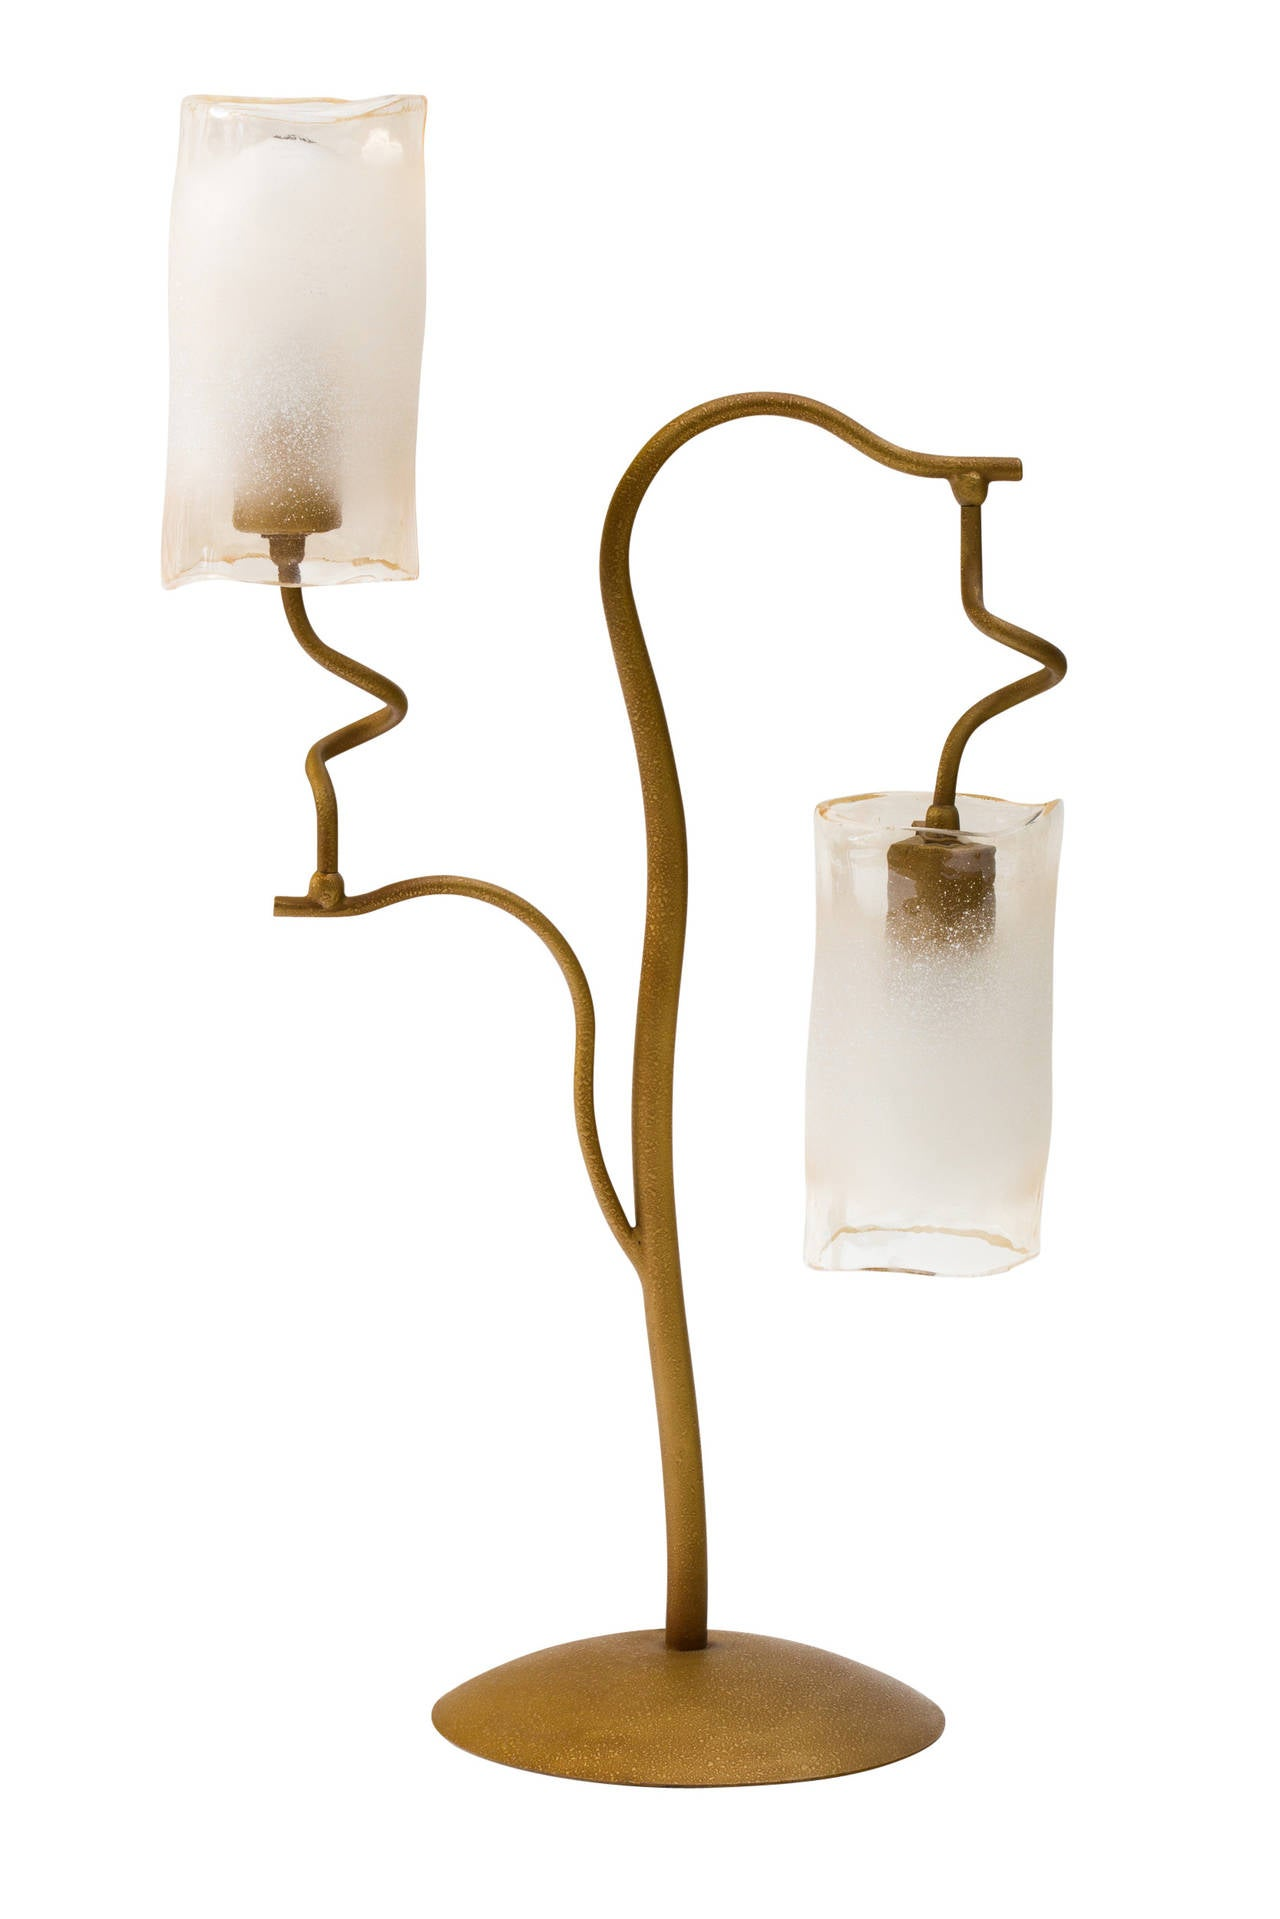 Italian 1980s double glass shade lamp with metal branches and circular 8 inch diameter base.